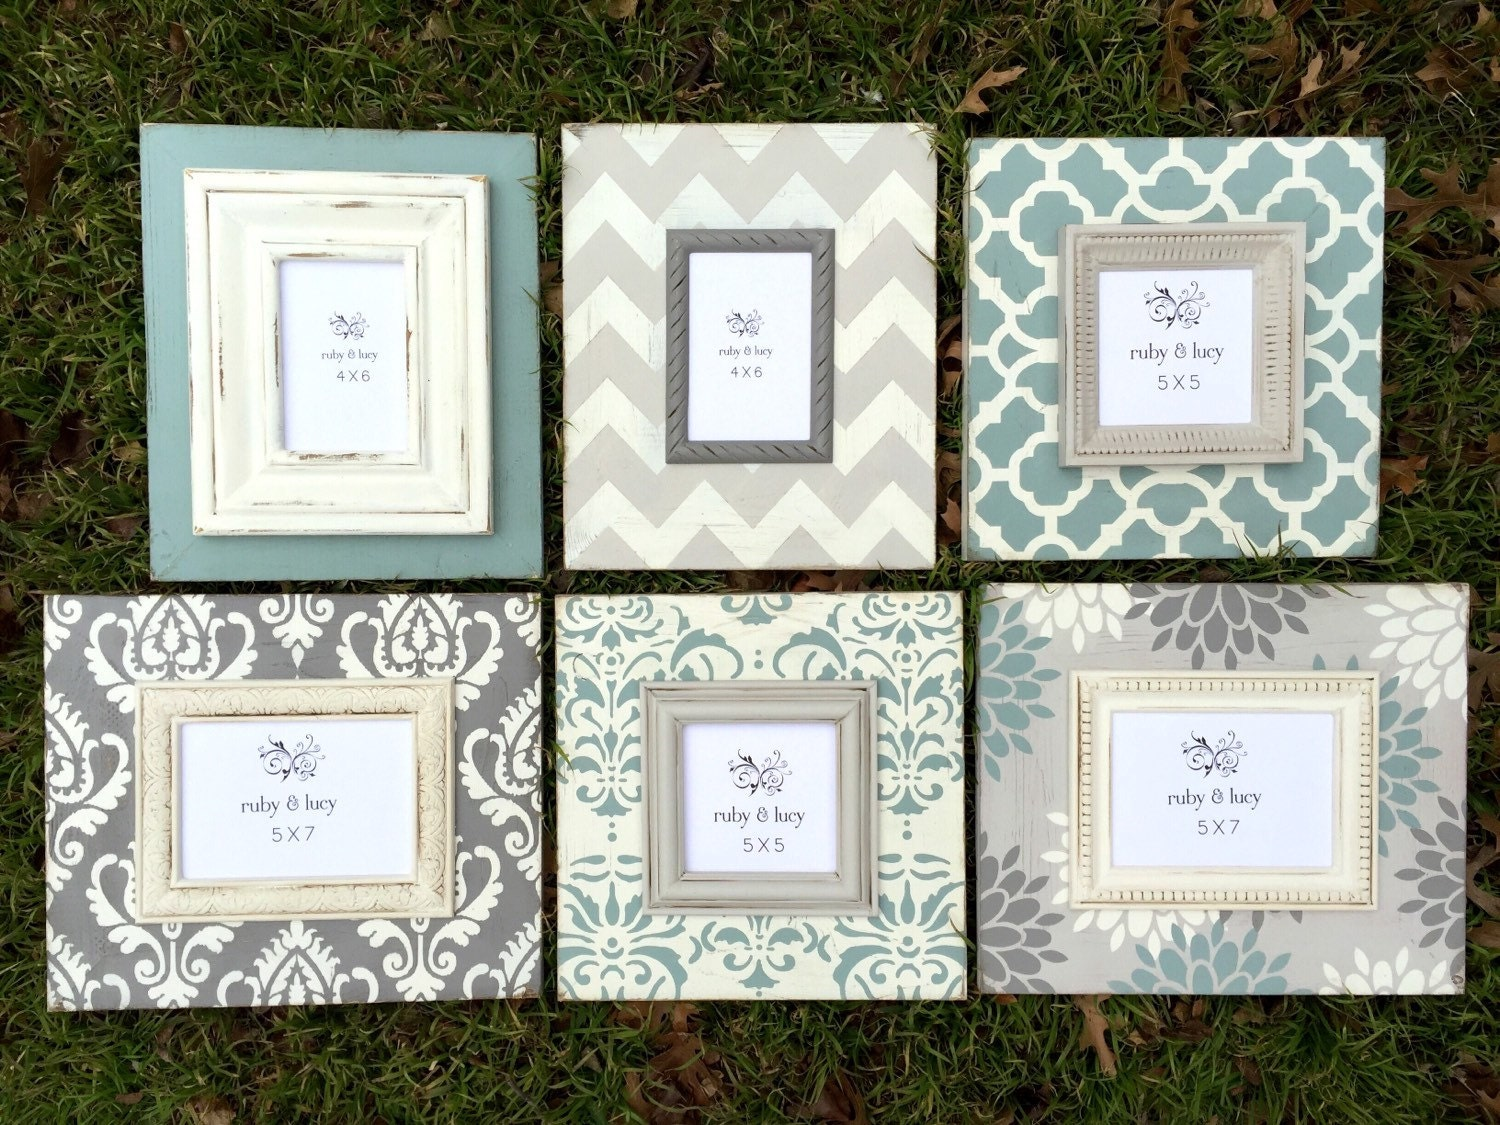 Distressed wood picture frame set gallery wall grouping 5x7 5x5 distressed wood picture frame set gallery wall grouping 5x7 5x5 4x6 duck egg wall art decor chevron neutral color modern frame jeuxipadfo Image collections